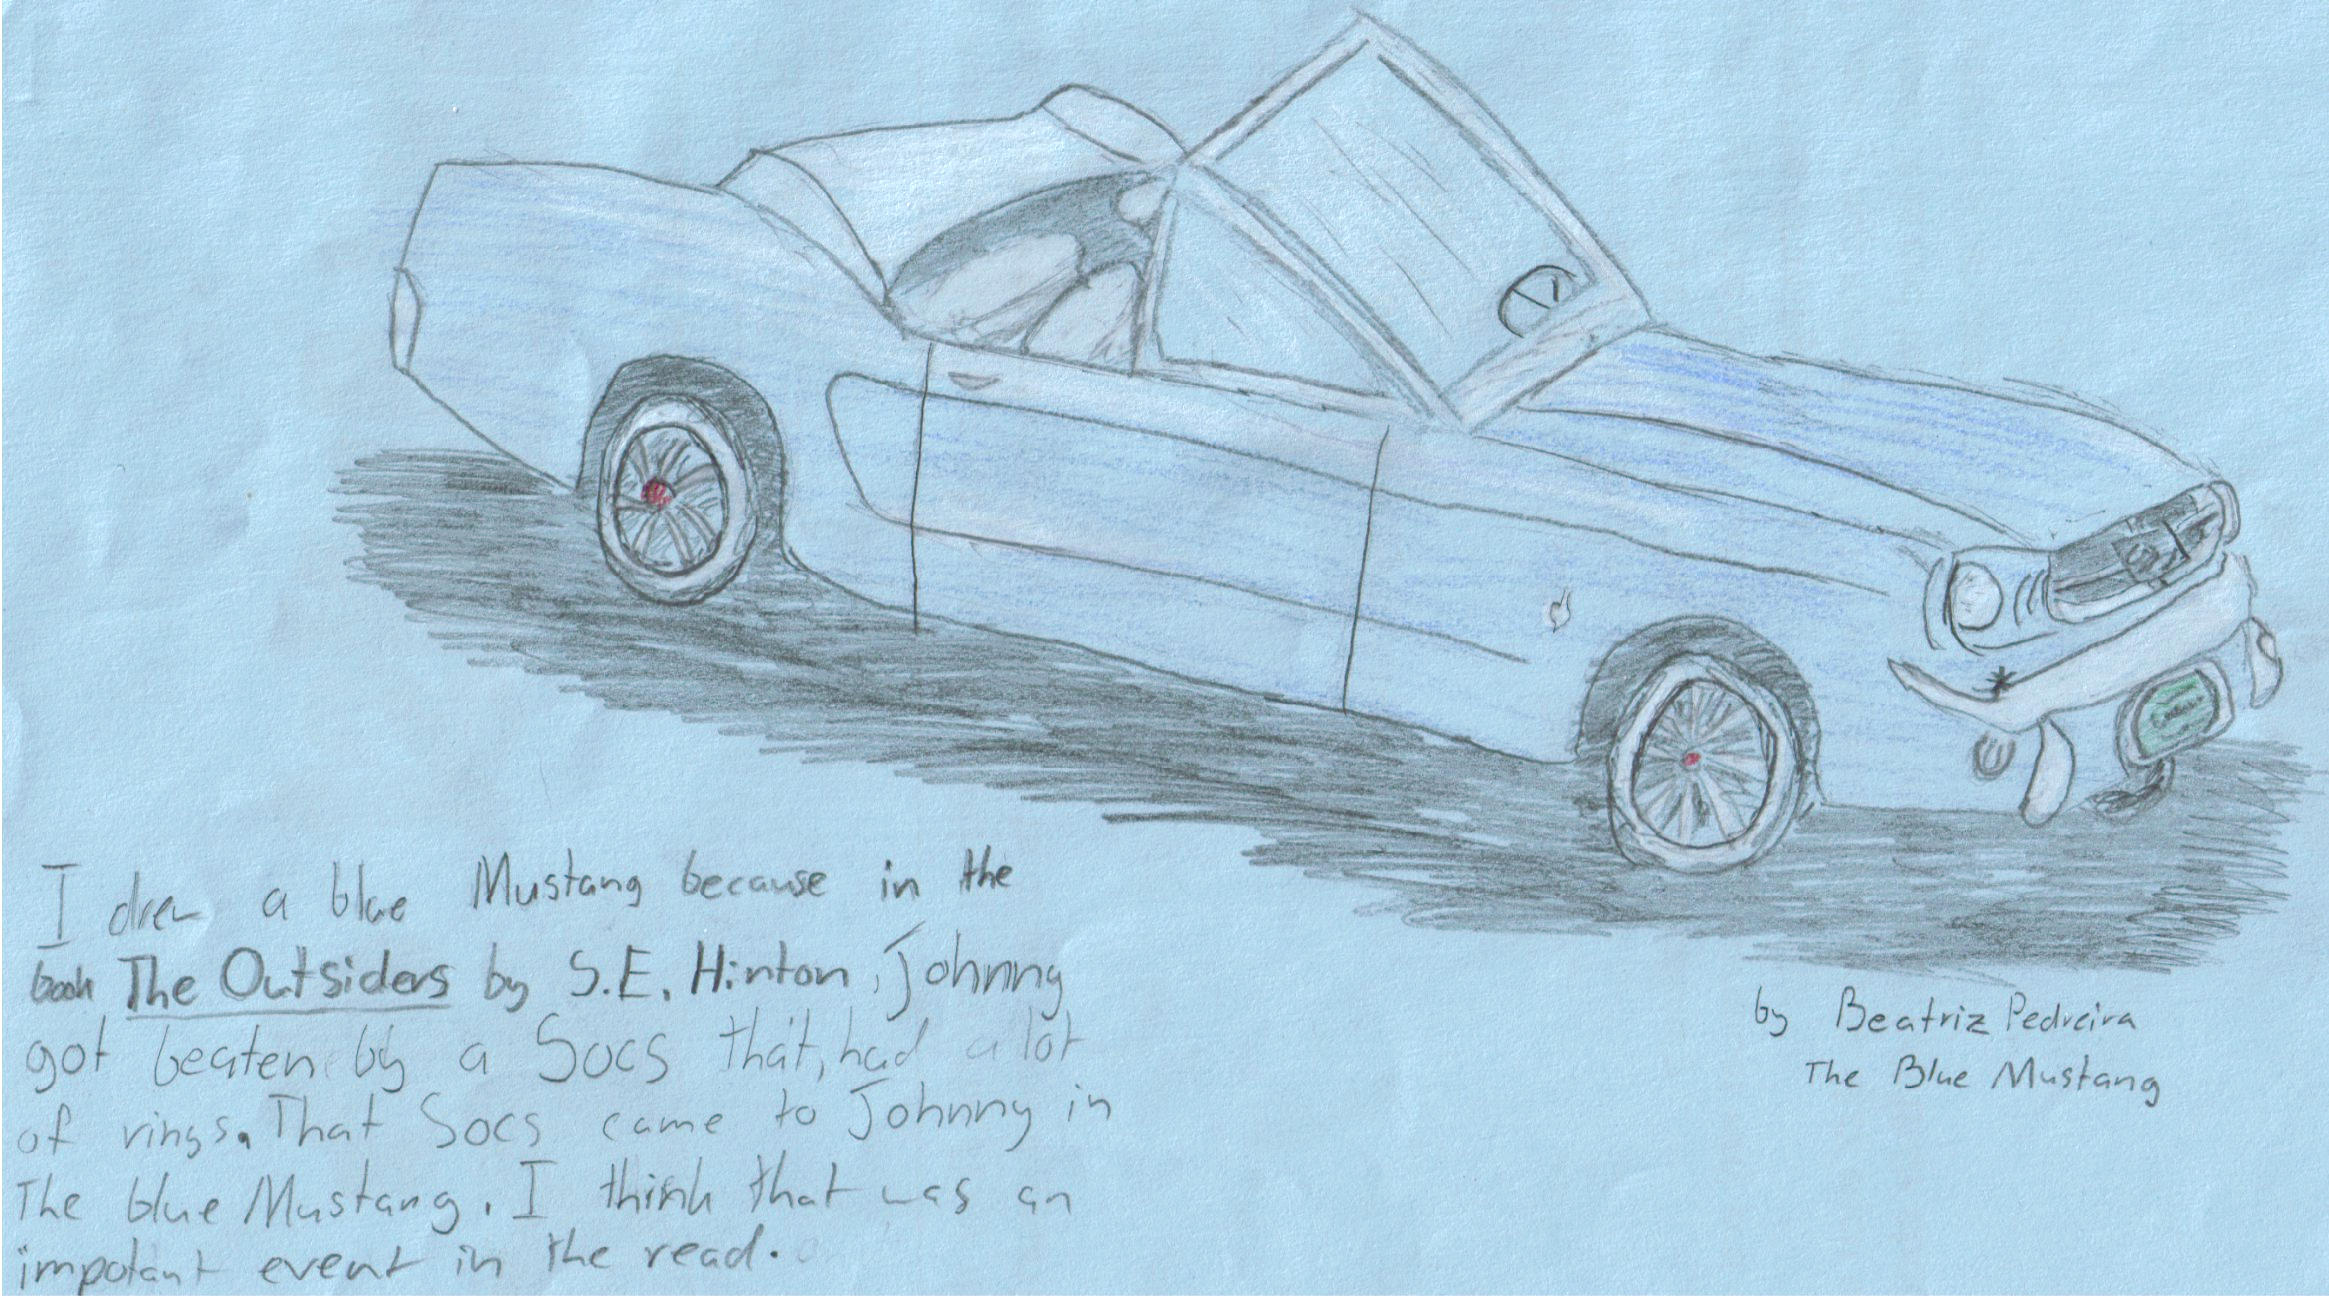 The Blue Mustang by Bluefoxv3 on DeviantArt